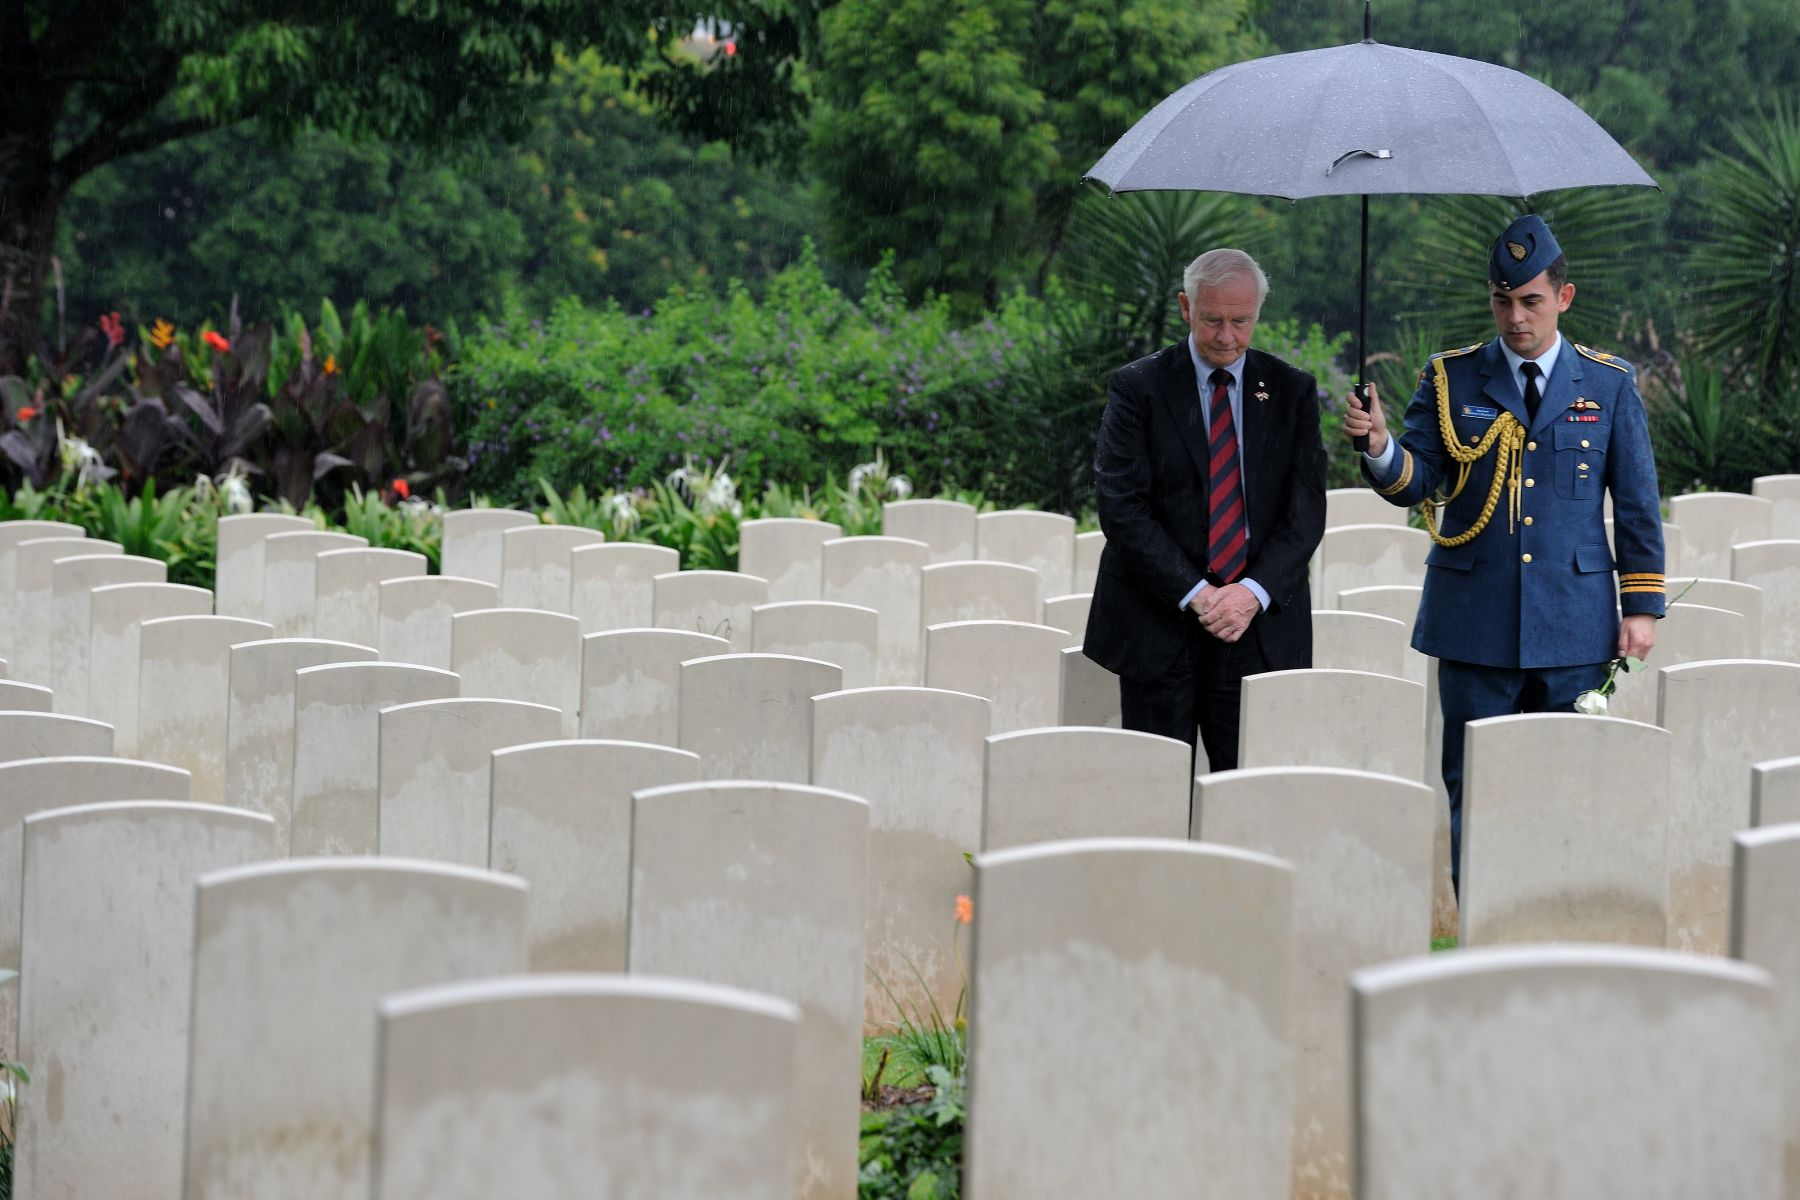 His Excellency also paid tribute to our fallen soldiers by visiting four Canadian graves at the Kranji War Cemetery.